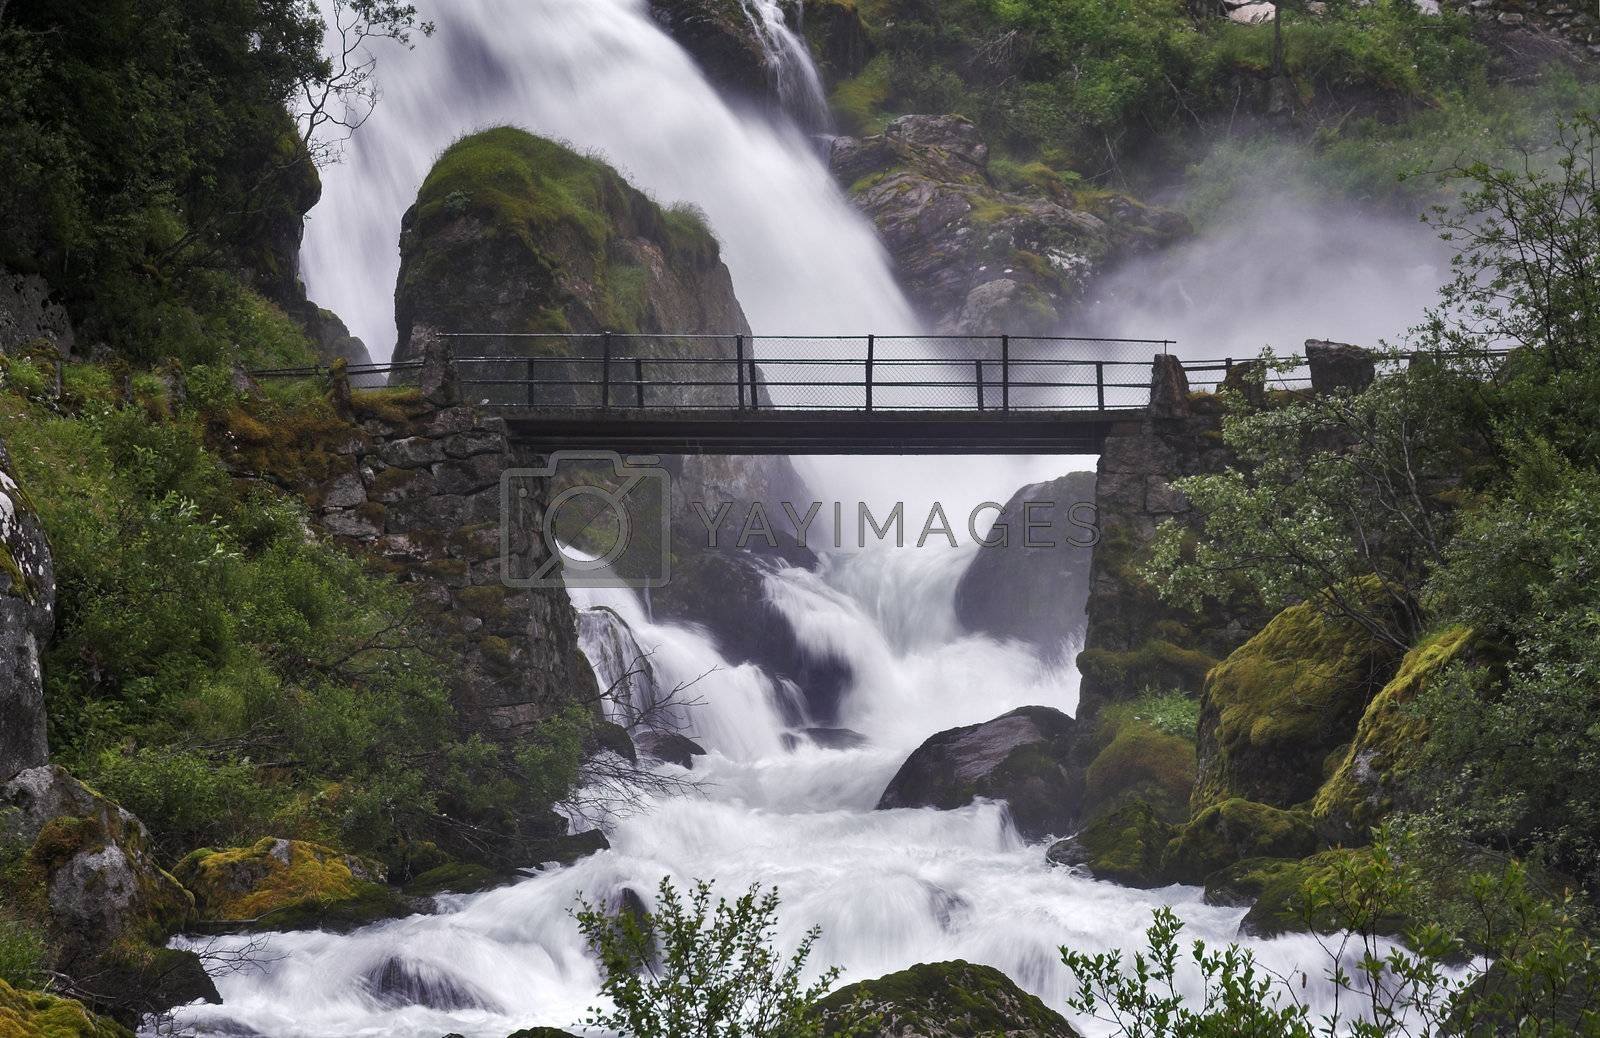 Bridge across the stream near a powerful waterfall surrounded by misty clouds